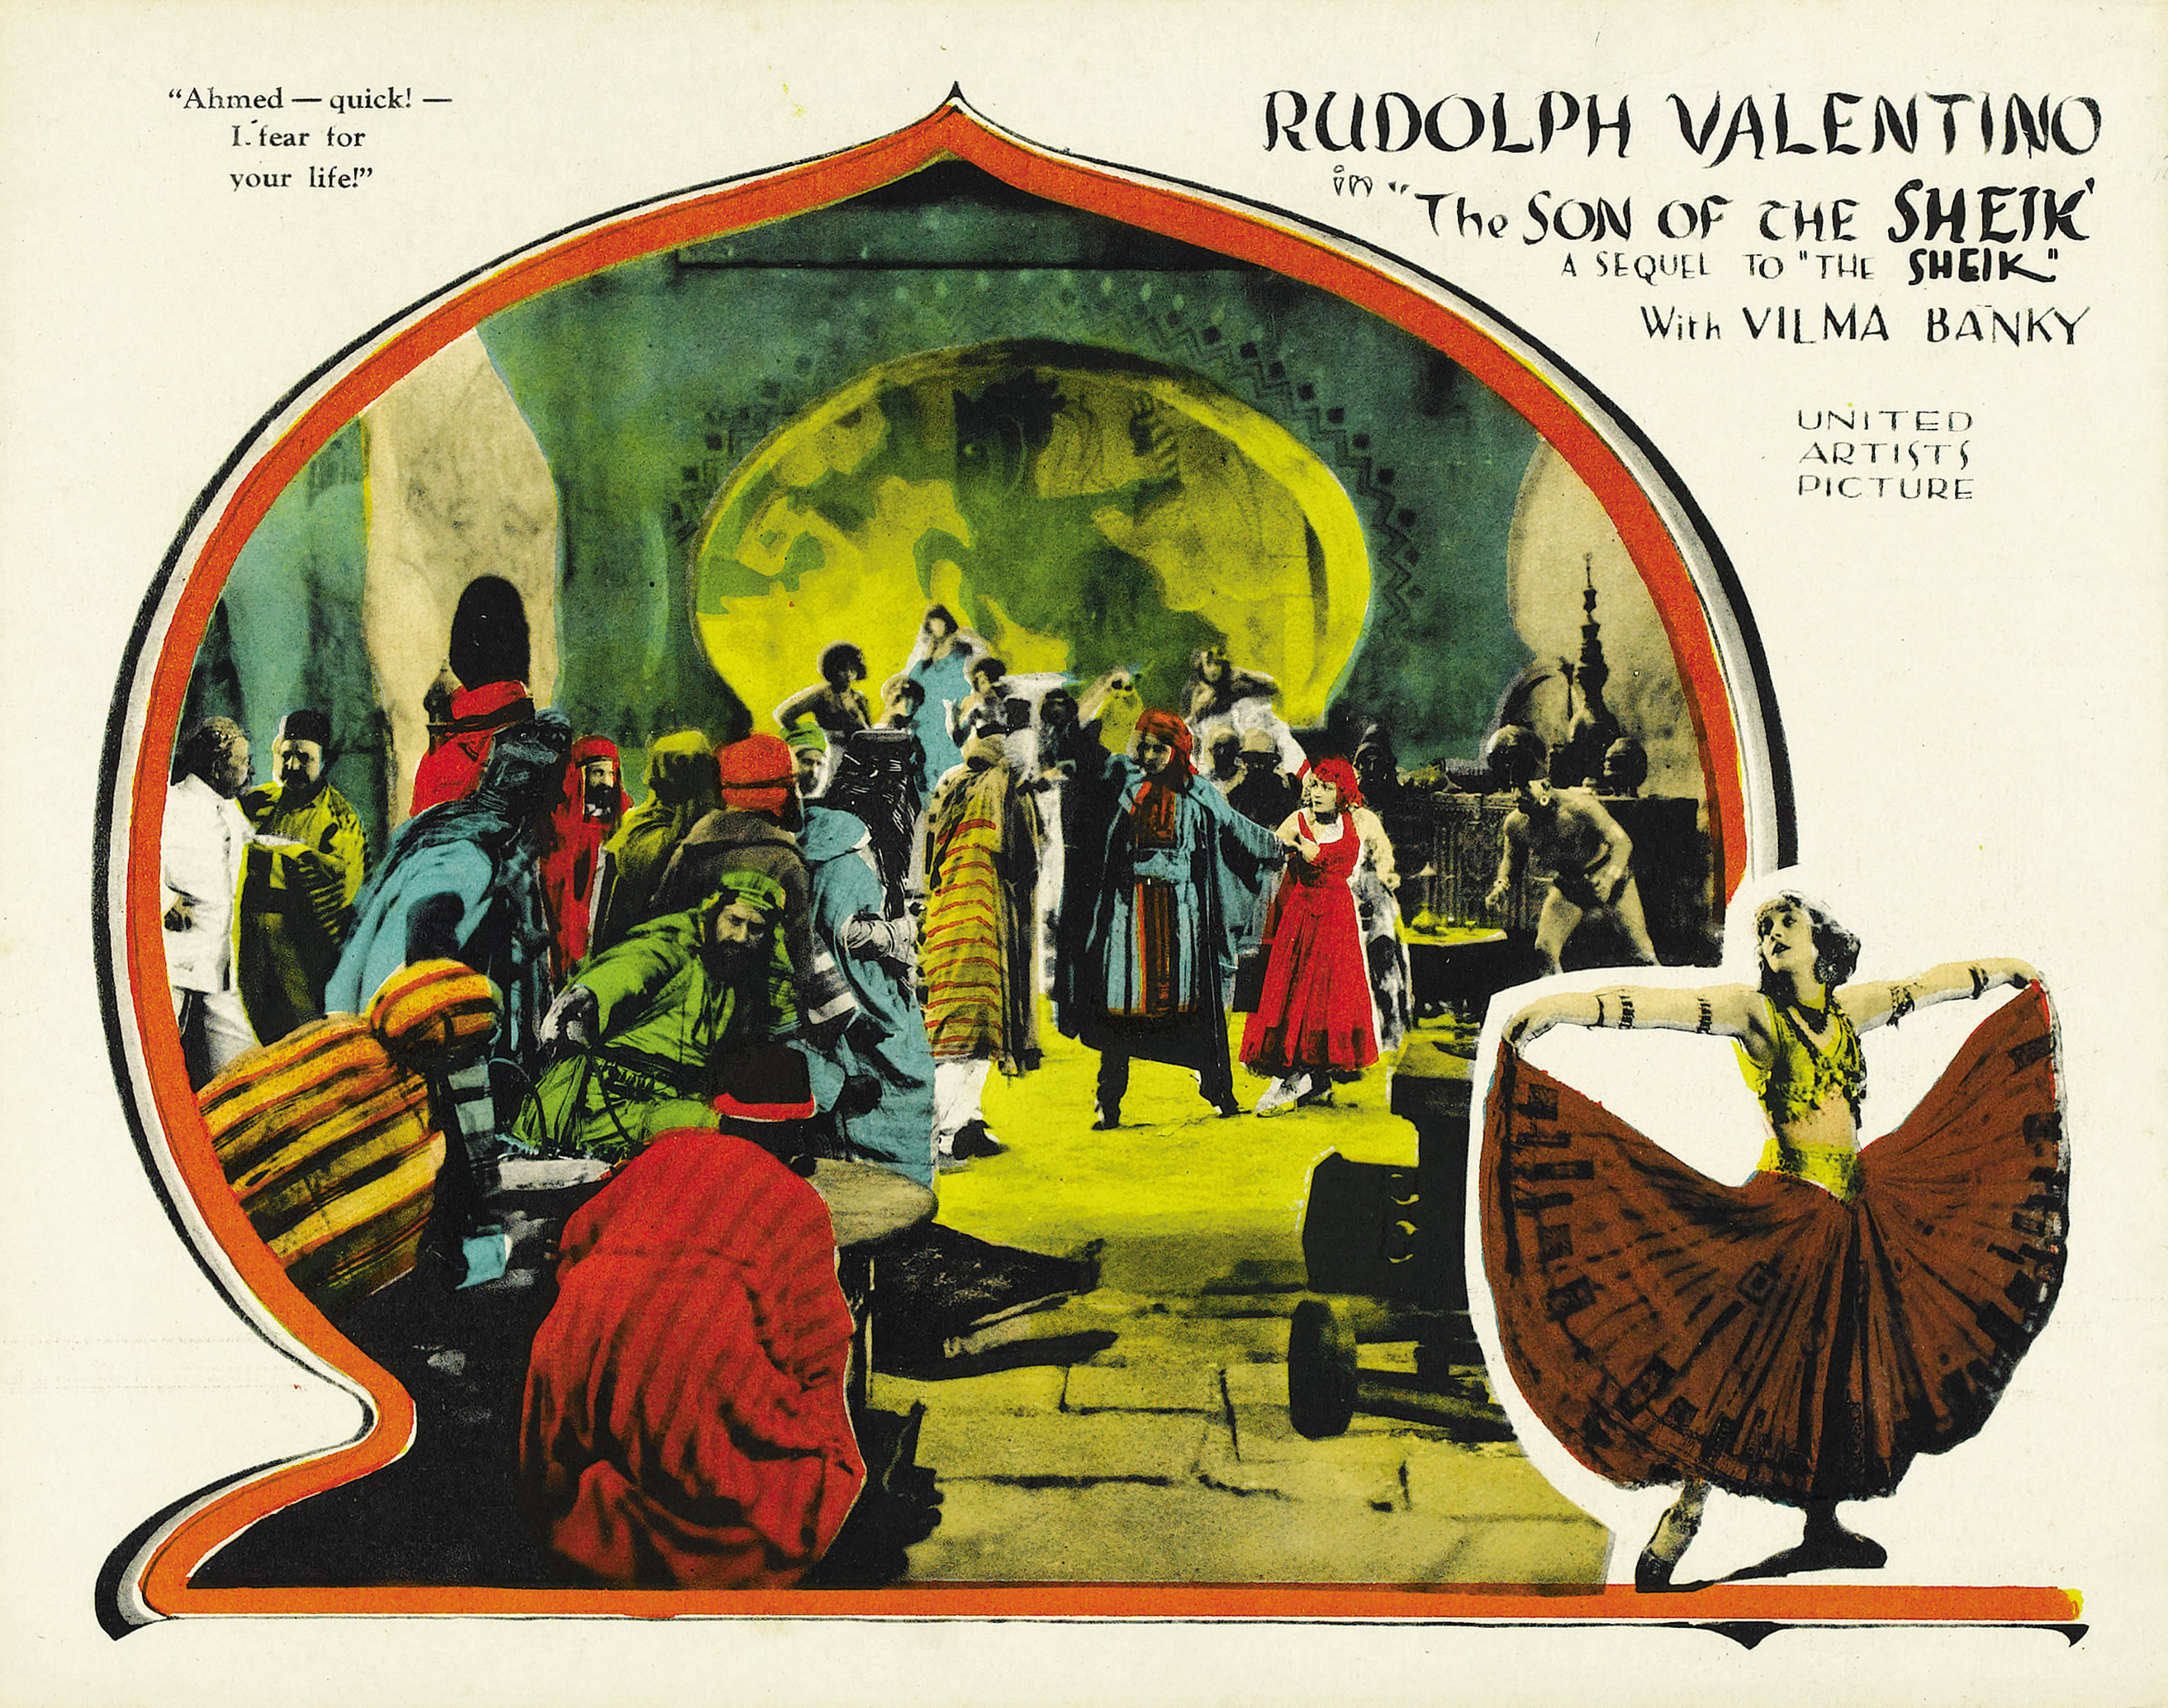 an introduction to the life of rudolph valentino the great lover and the sheik Rudolph valentino: dream lover the great lover of the twenties sneered at by bogart © 2014 bright lights film journal.